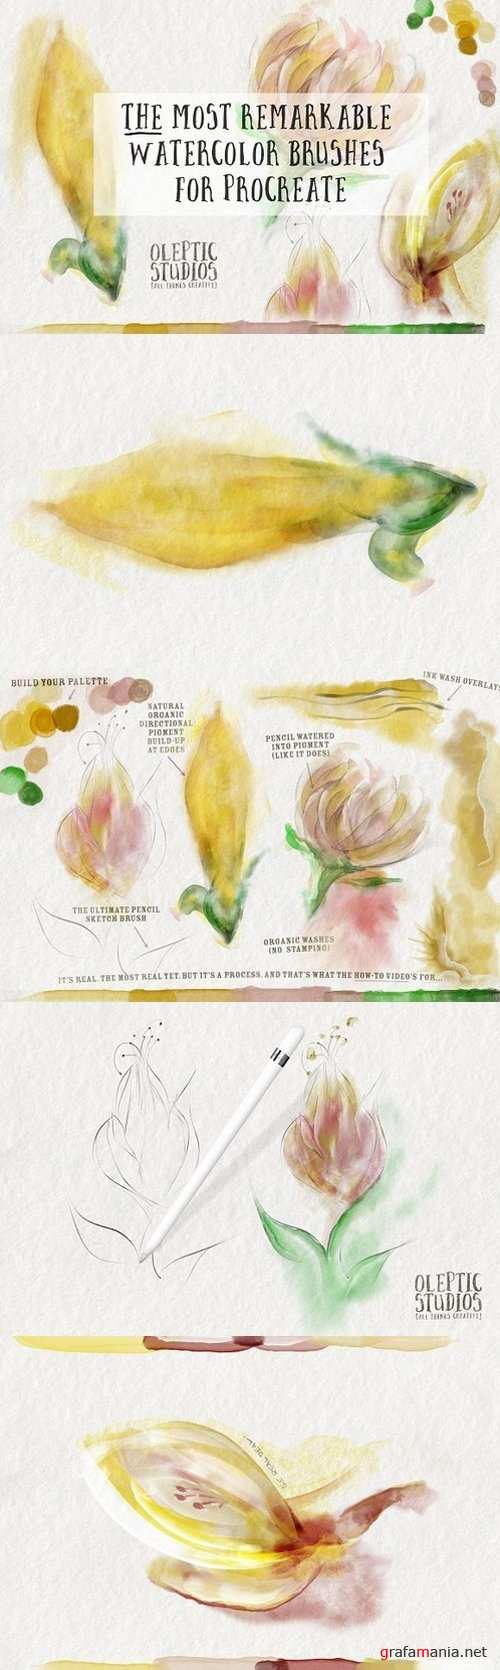 Best Watercolor Brushes — Procreate 1393456